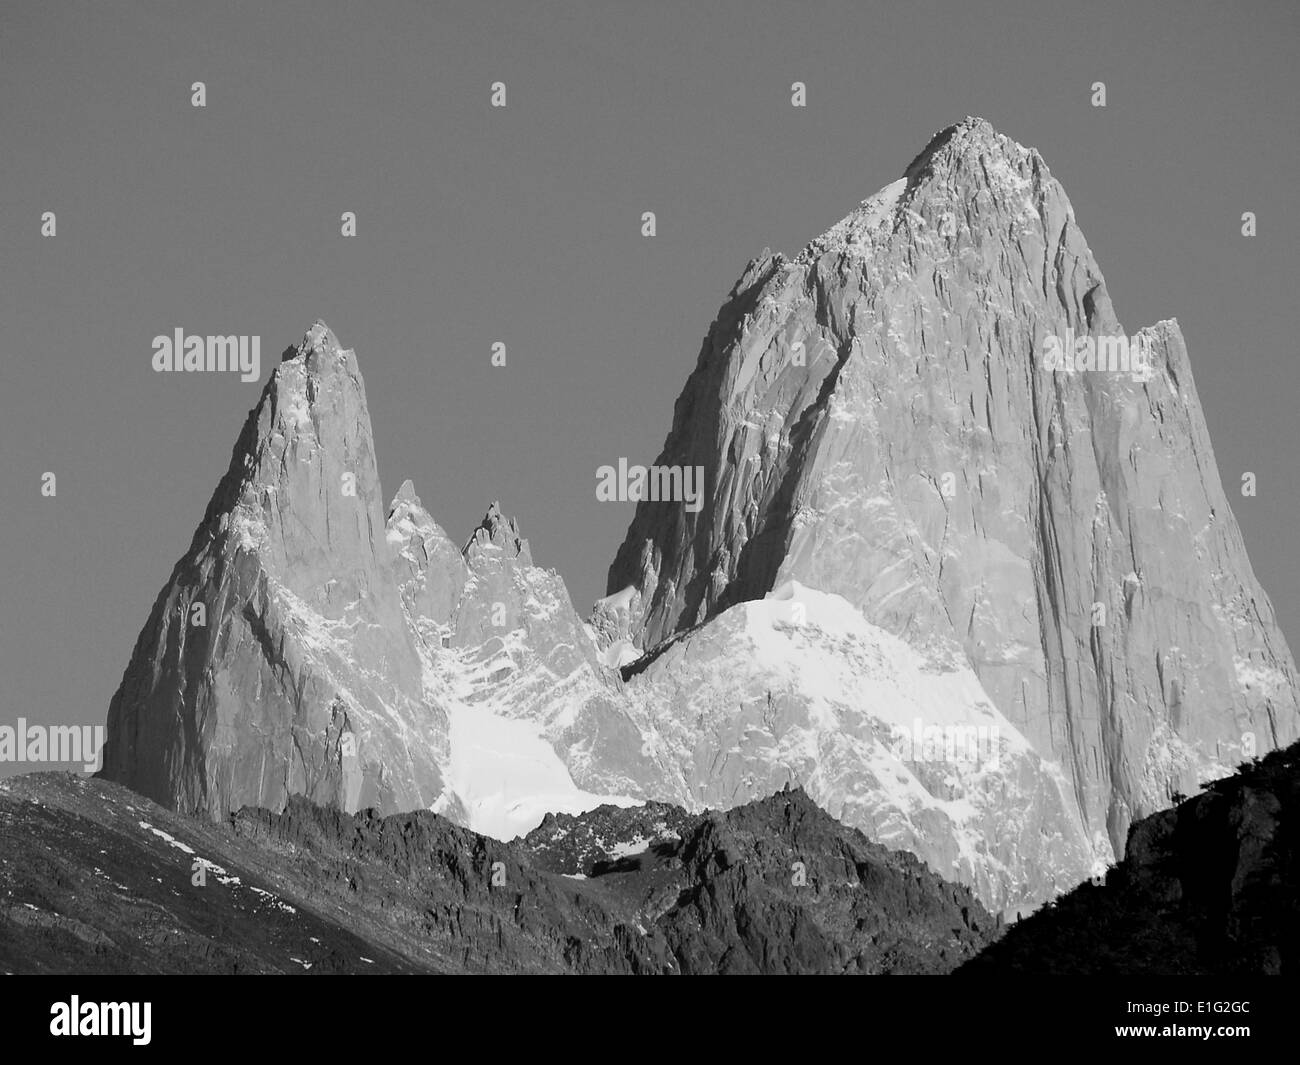 The Fitzroy Massif,Andes Mountains,Argentina - Stock Image